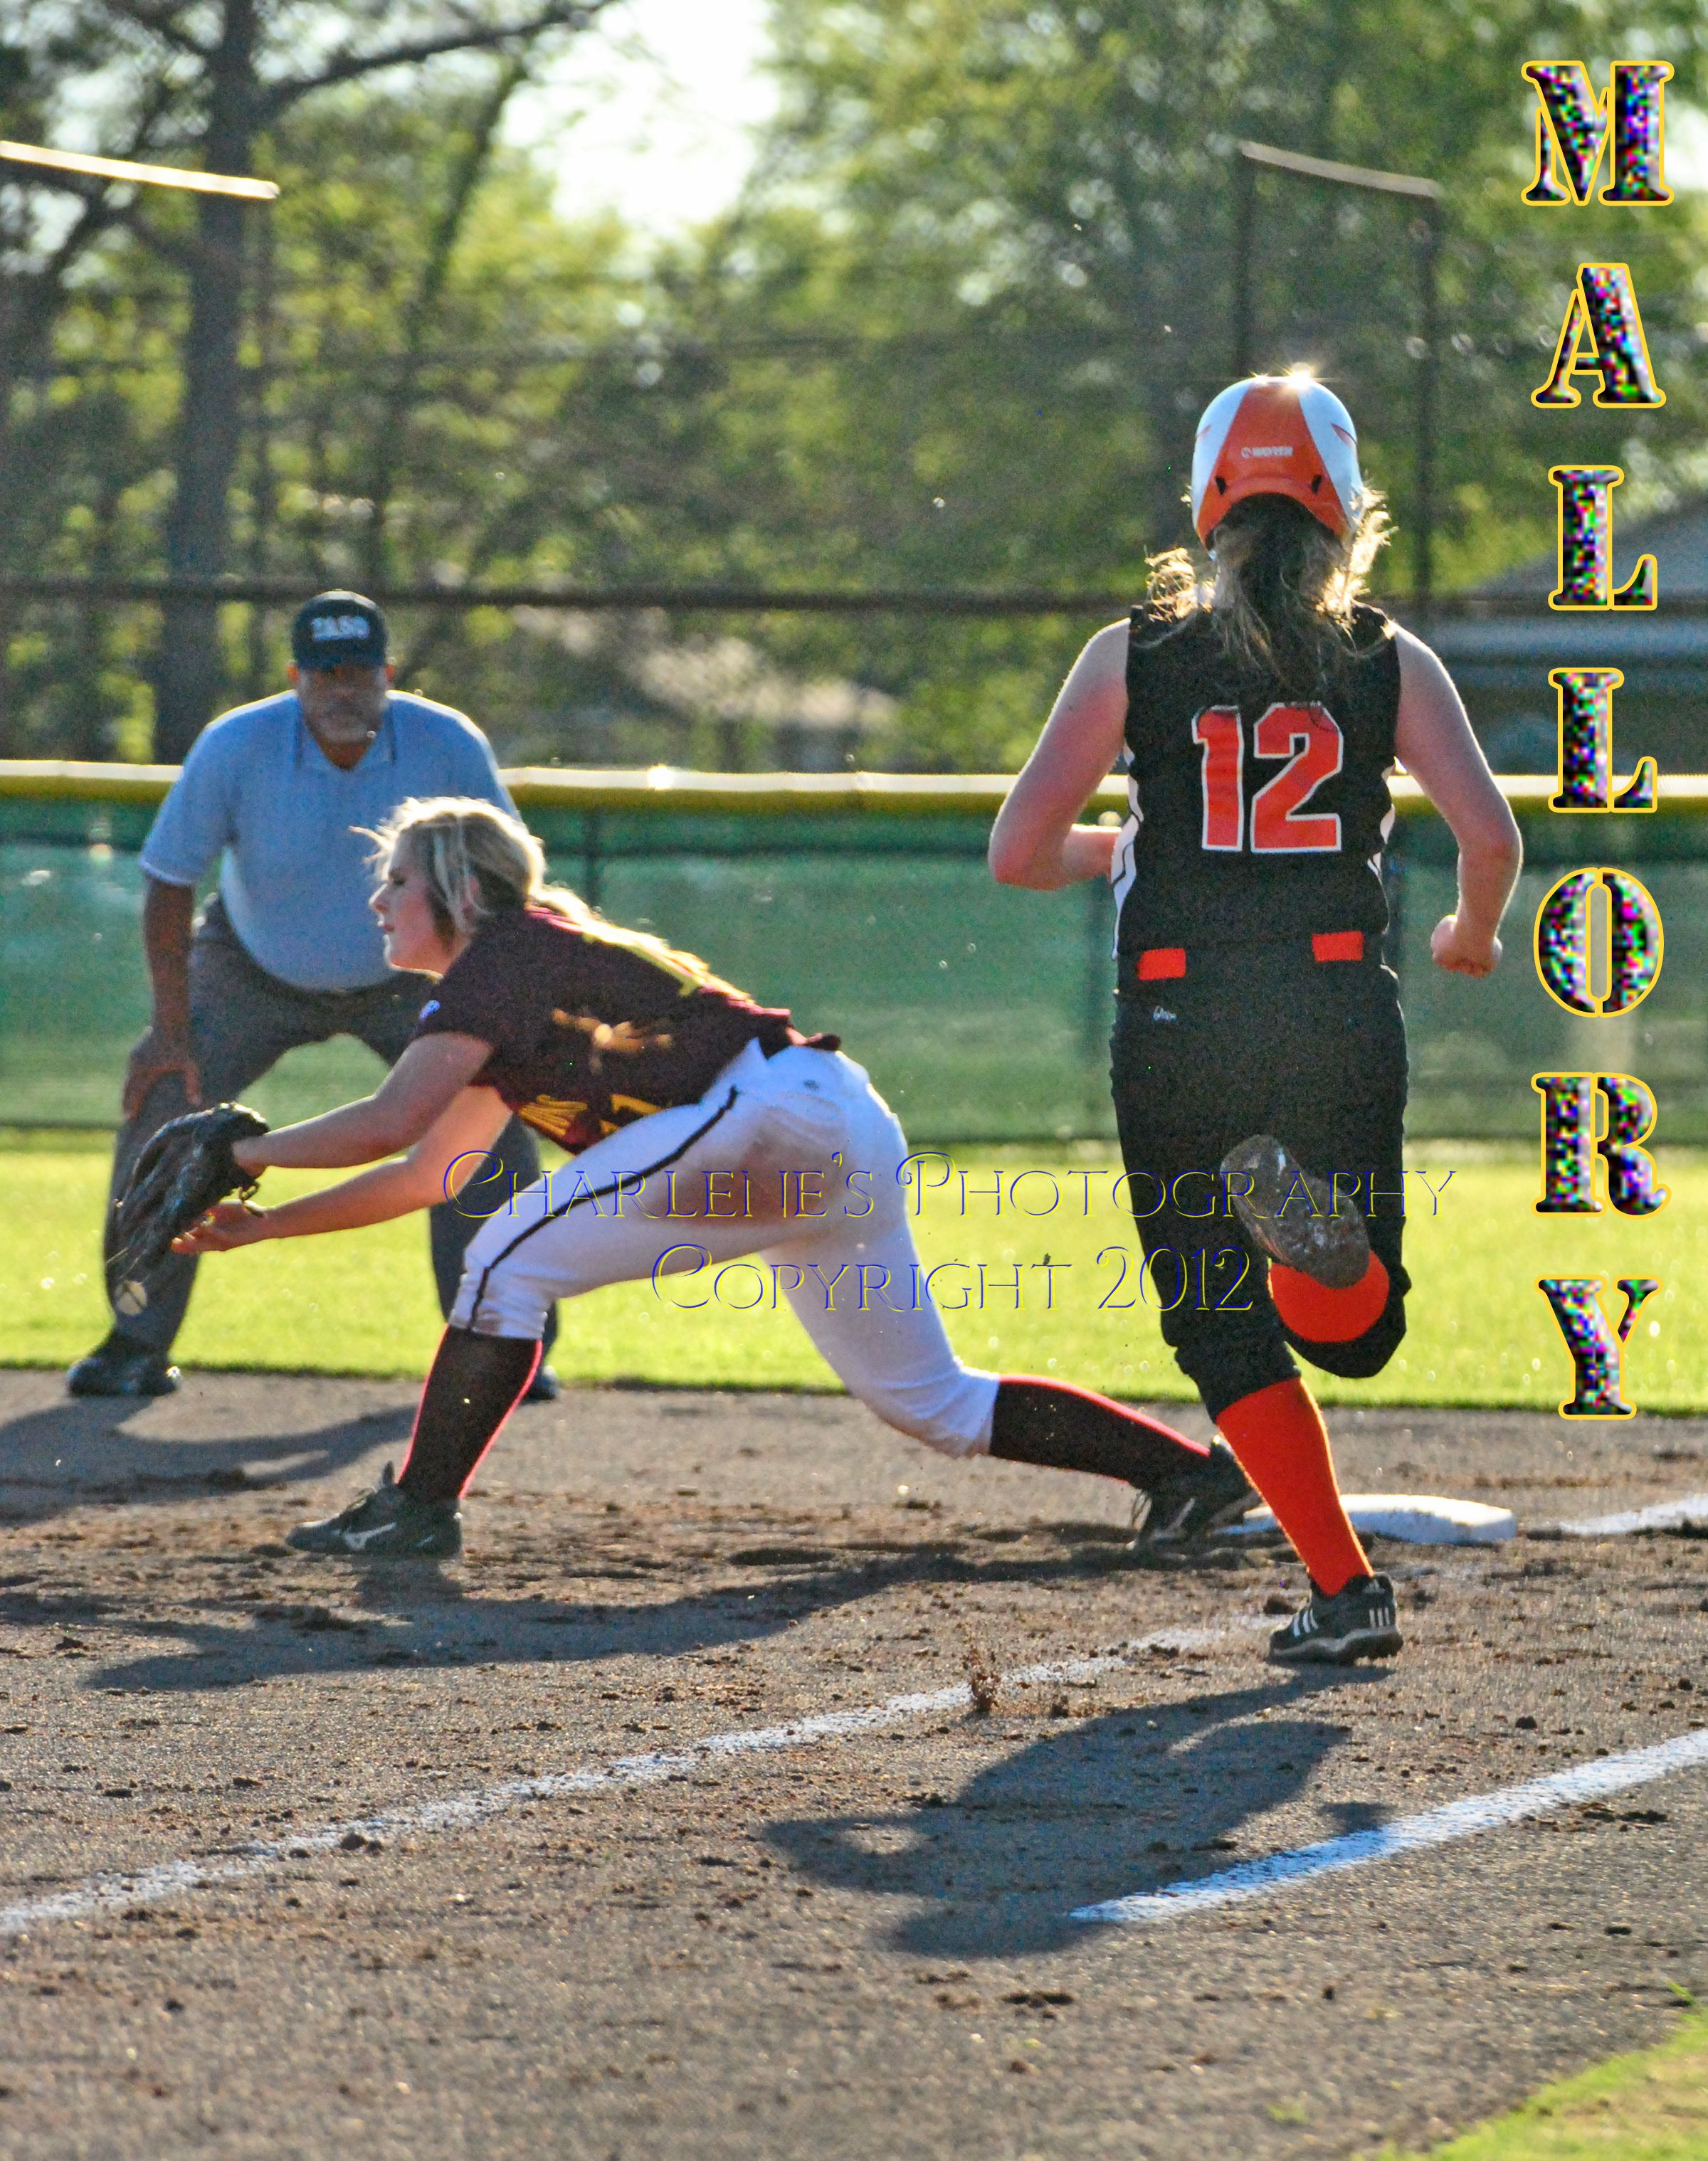 New Boston Lady Lion, #11 Mallory Ozmy a junior playing a rotation on first base.